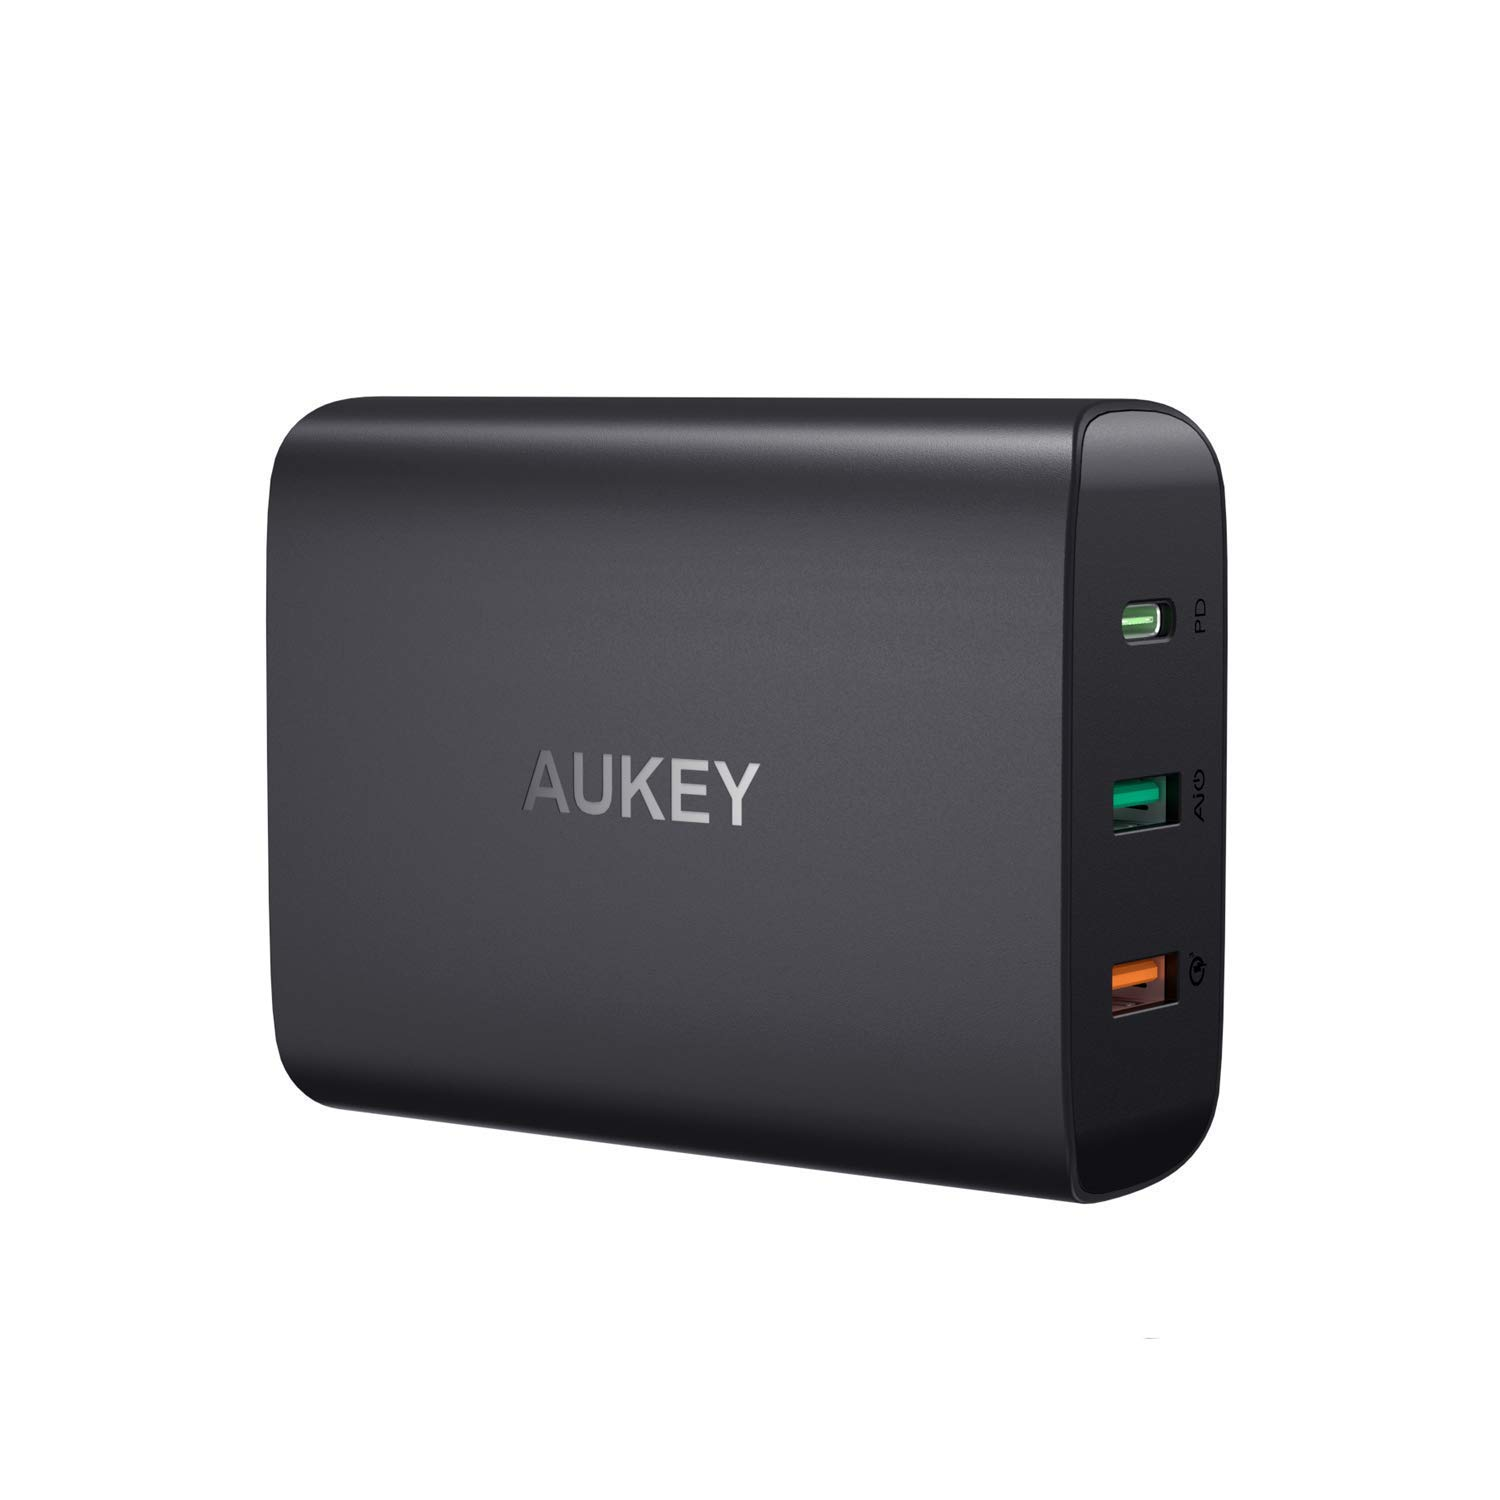 AUKEY USB C Charger, 74.5W 3-Port Wall Charger with 46W Power Delivery 3.0 & Quick Charge 3.0, Compatible MacBook, iPad Pro, iPhone 11/11 Pro/Max/XS/XR, Samsung Galaxy S9 / S9+ / Note9, and More by AUKEY